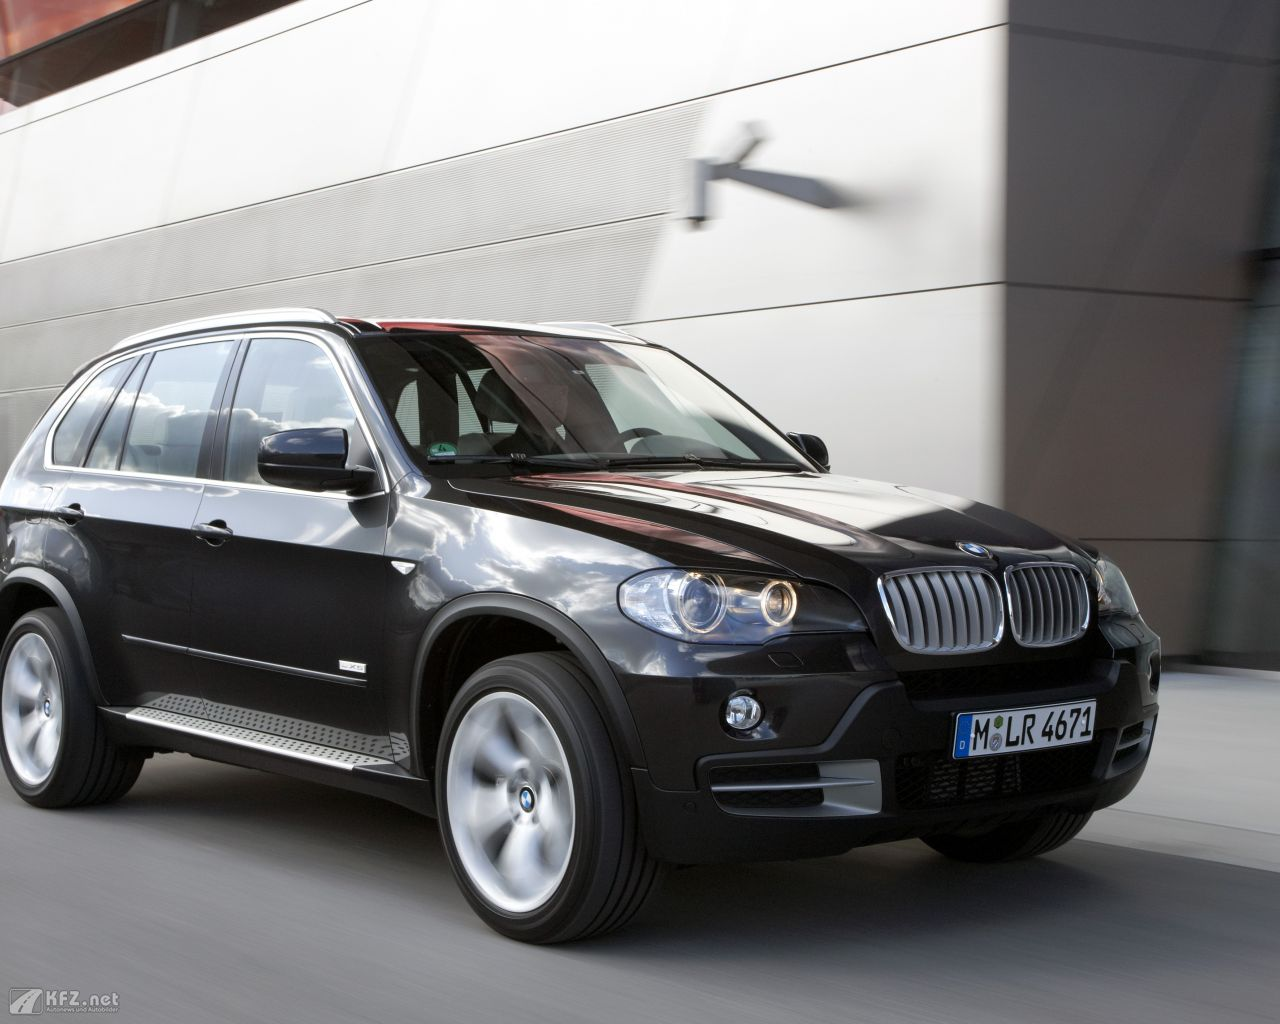 Bmw X5 Bilder Ein Sav Sports Activity Vehicle Aus M 252 Nchen